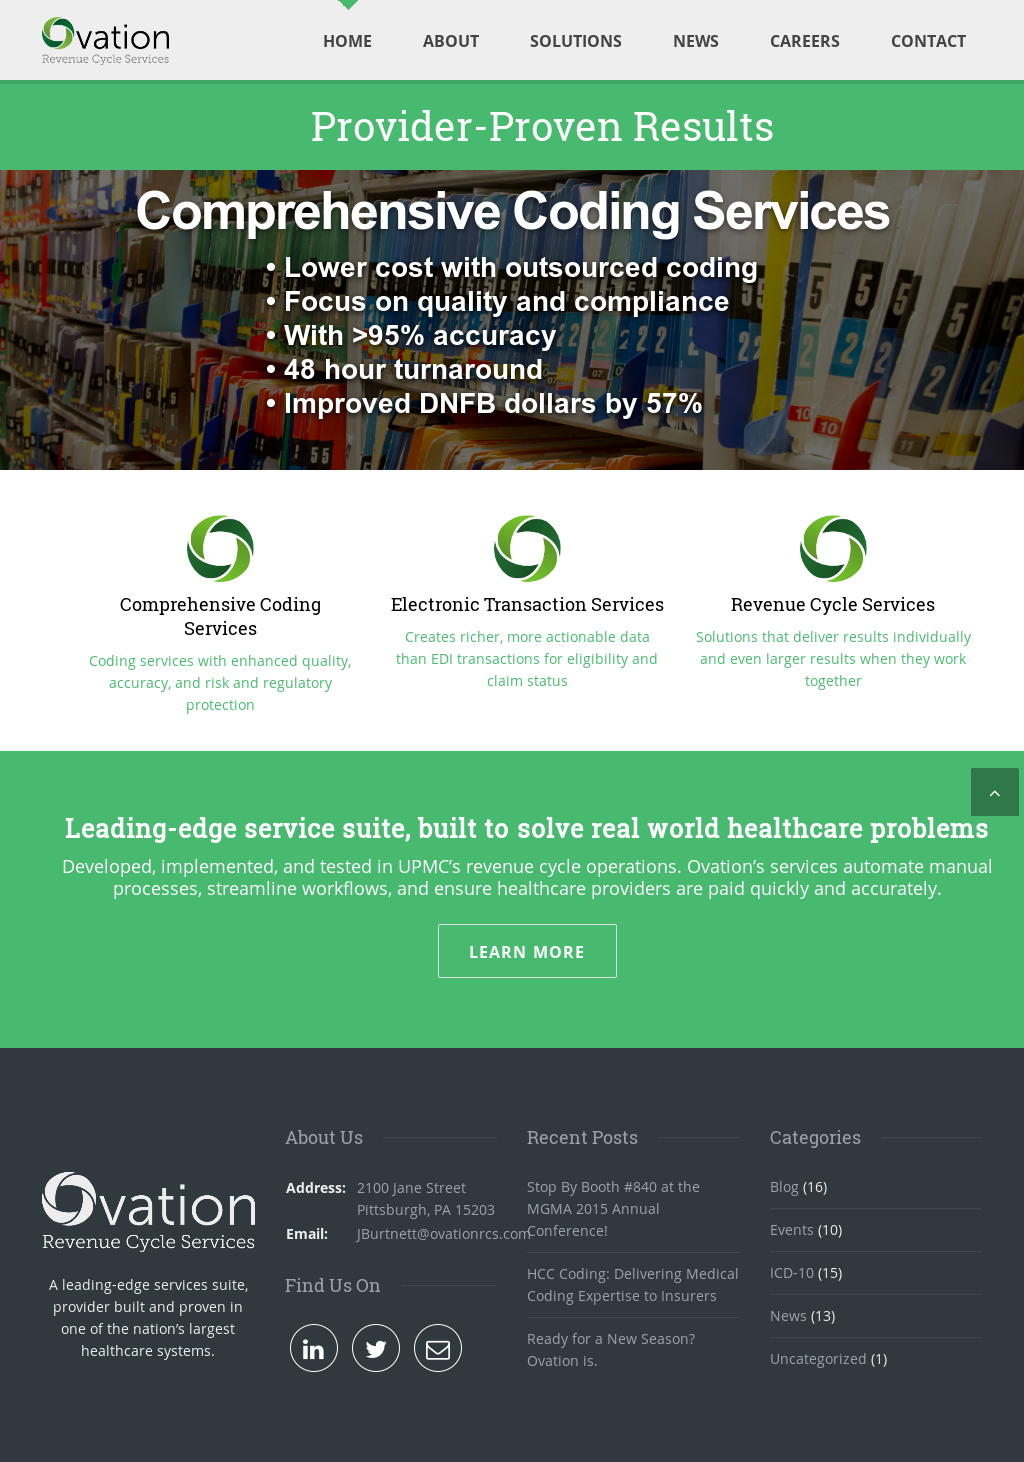 Ovationrcs Competitors, Revenue and Employees - Owler